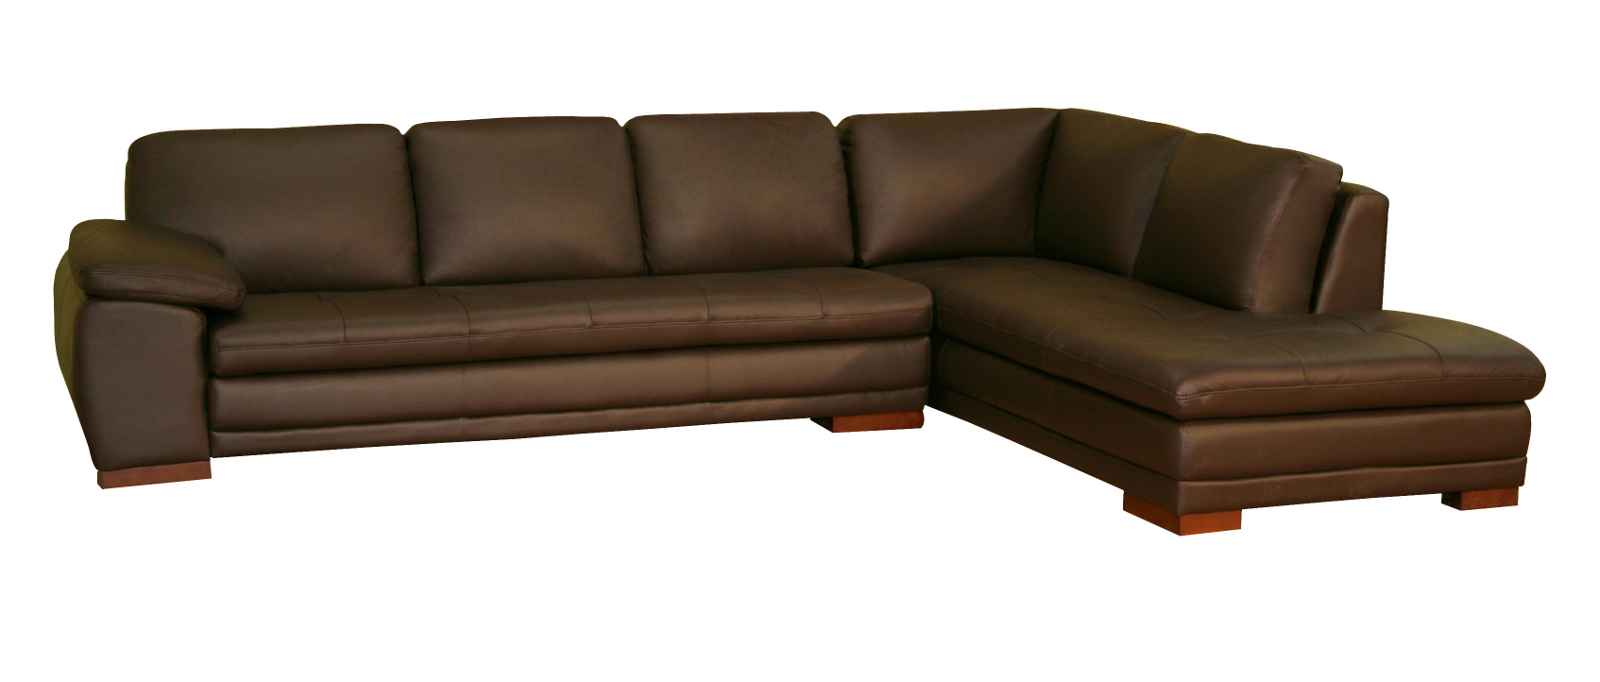 leather couch sectional brown photo - 4